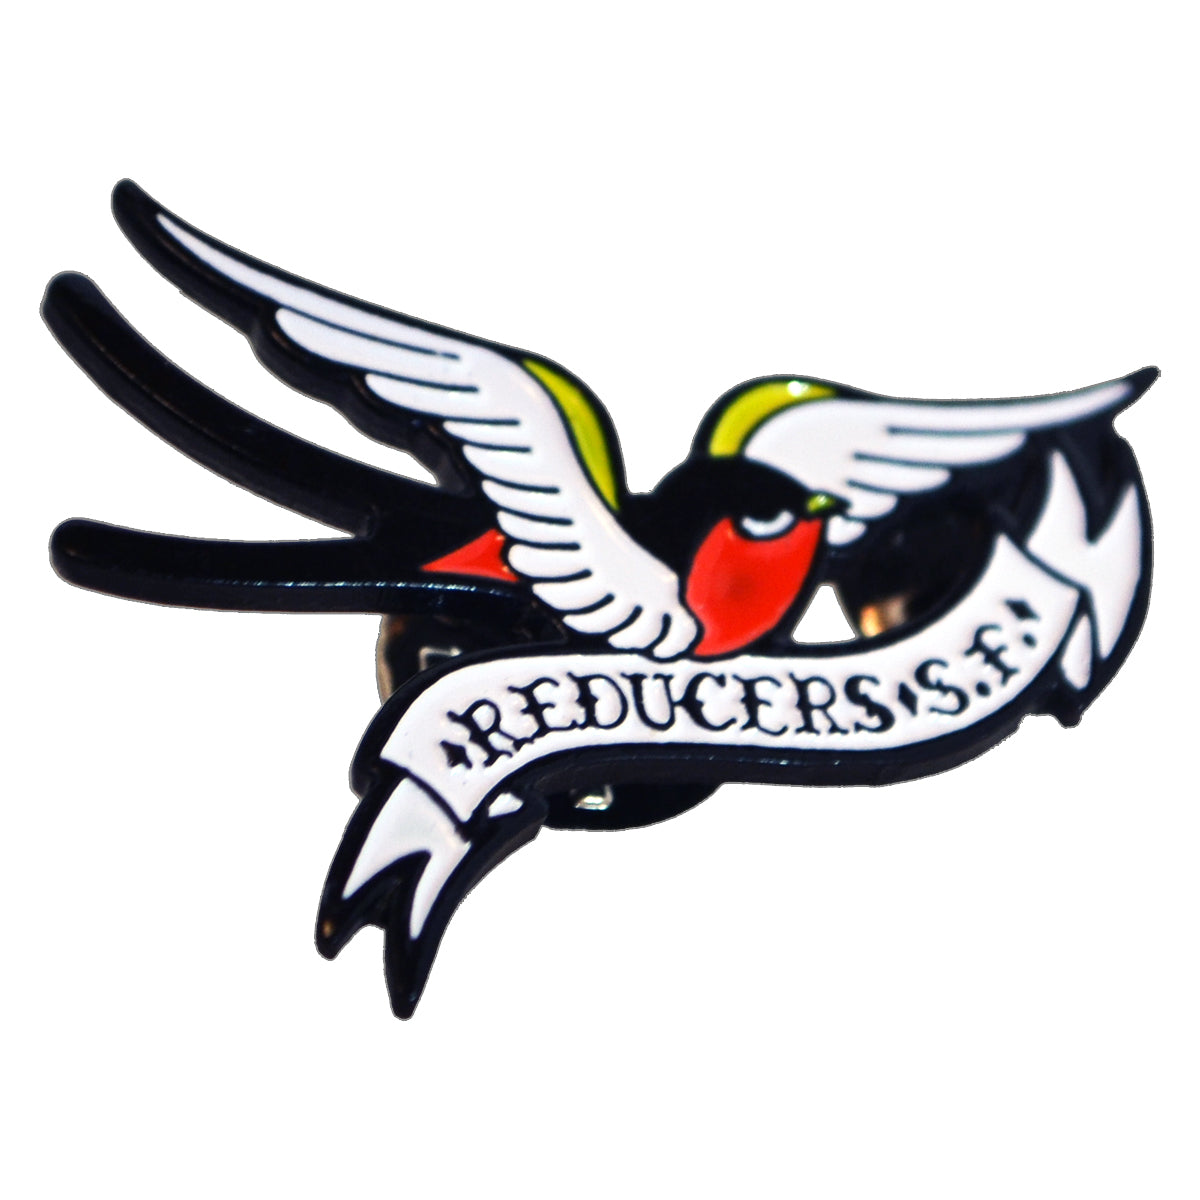 "Reducers SF - Bird Logo - 1.5"" Enamel Pin"